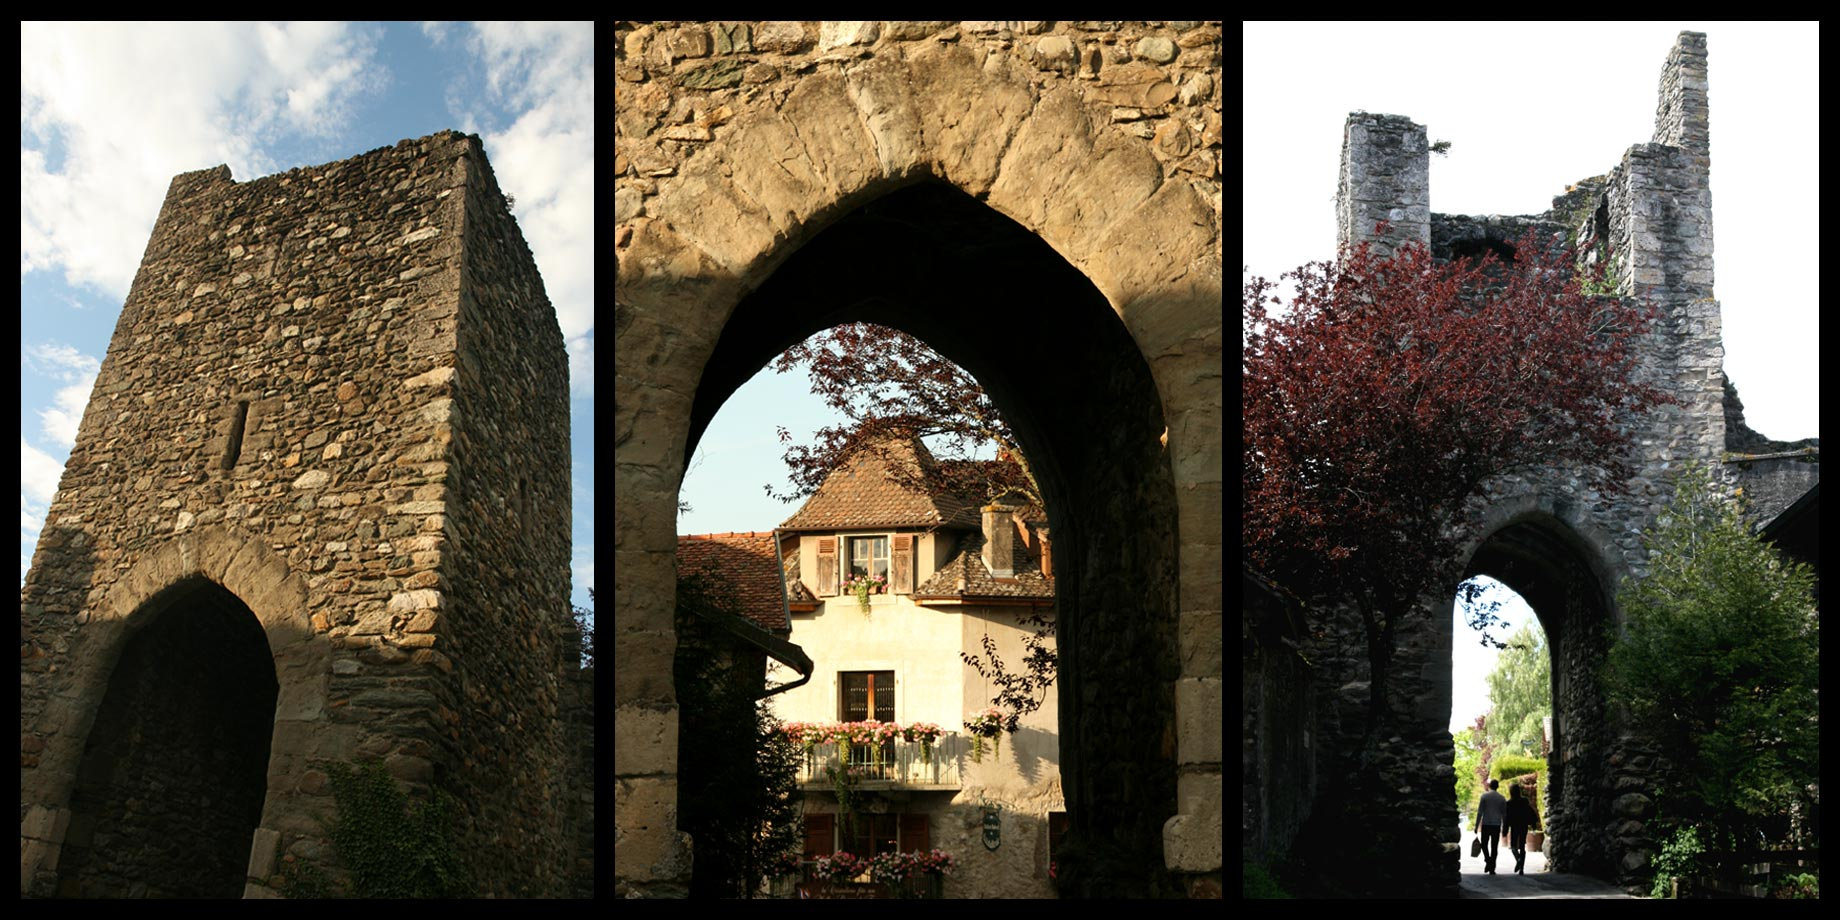 The Gate of Geneva and the ramparts of the medieval village of Yvoire.